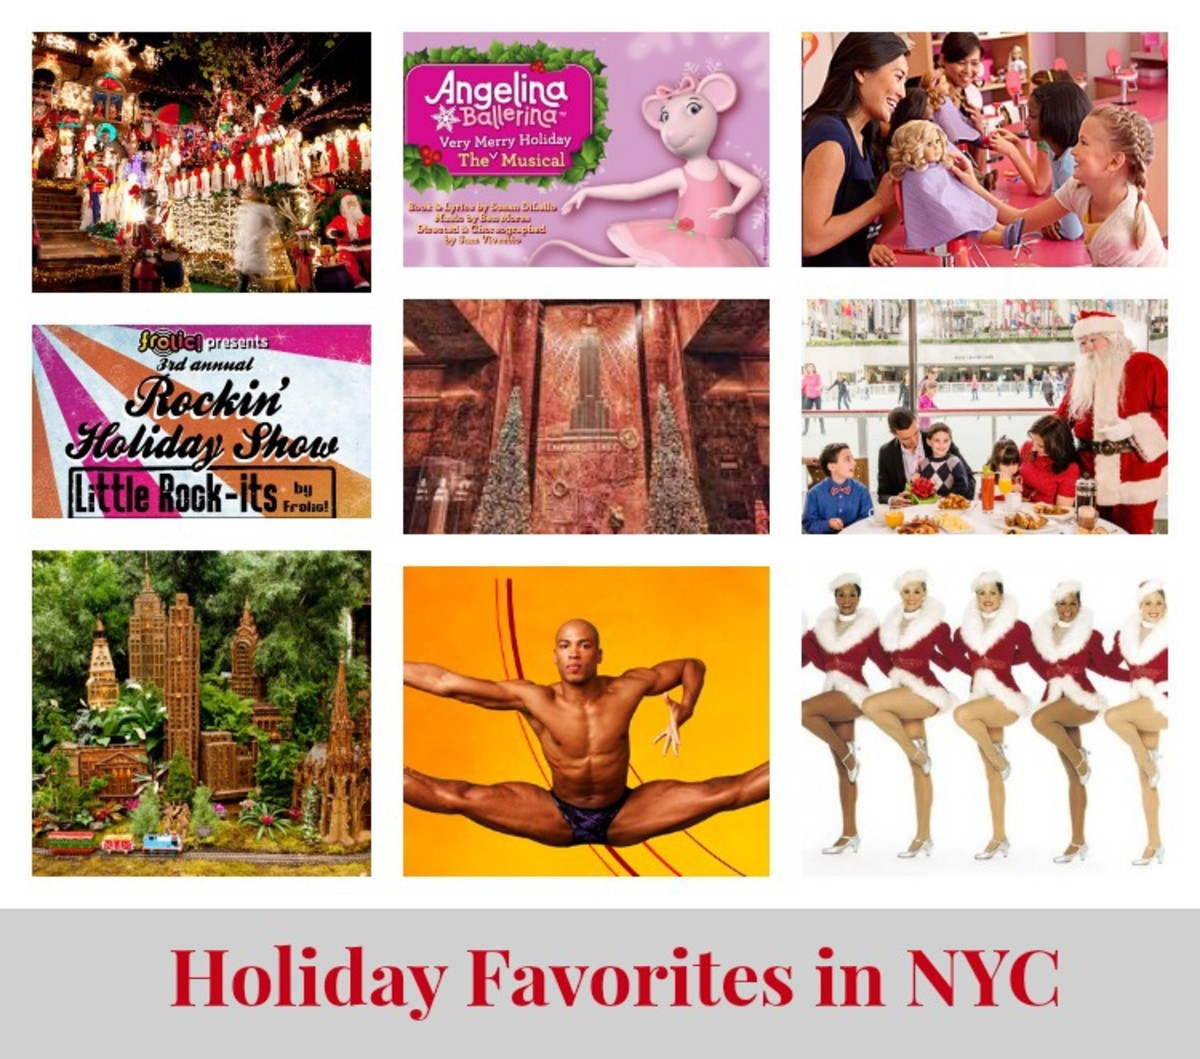 Holiday Favorites in NYC